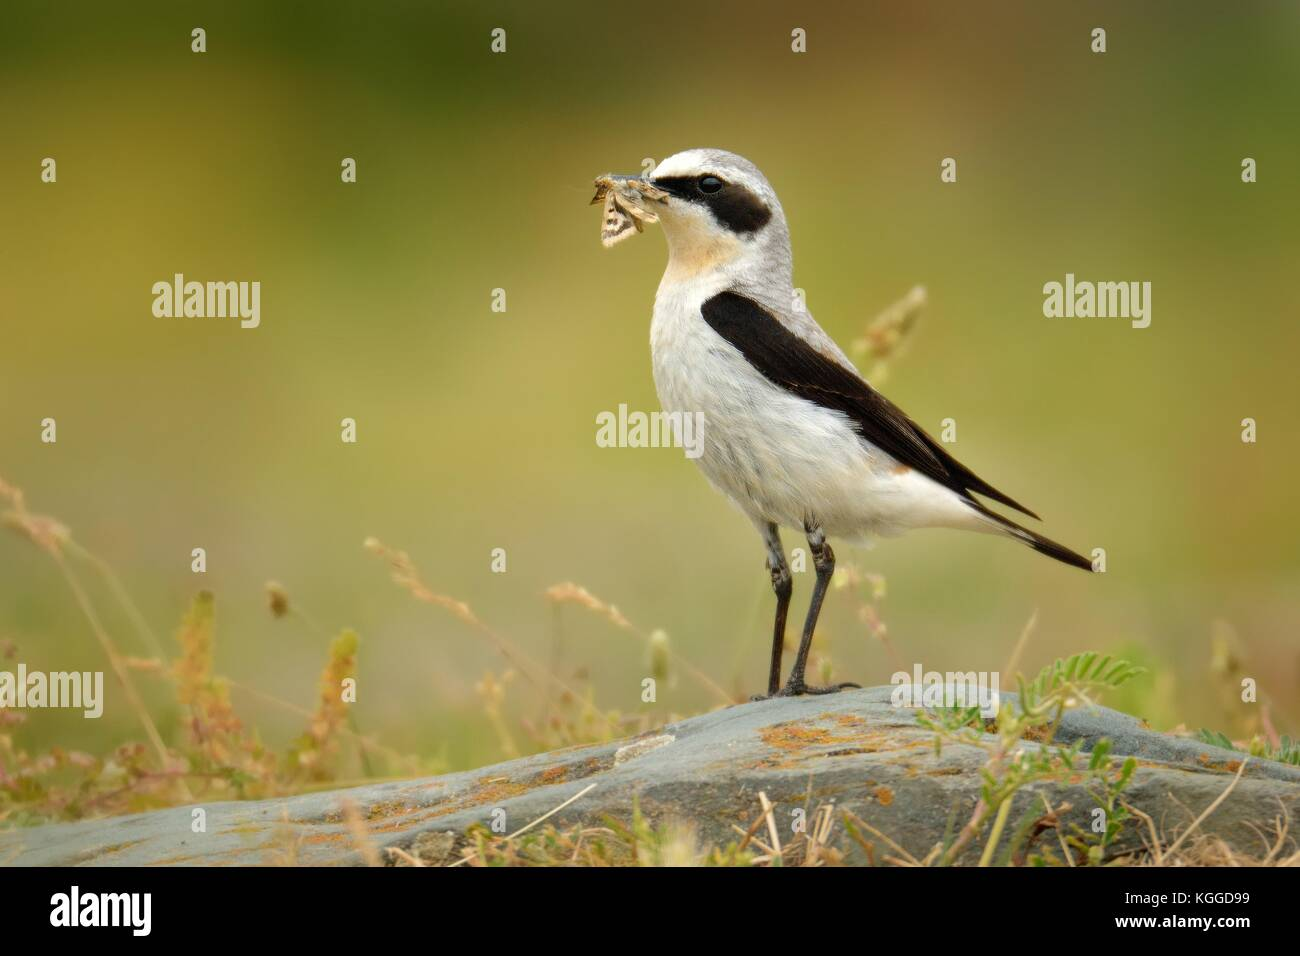 Northern Wheatear (Oenanthe oenanthe) with the moth during its chicks feeding. Sitting on the stone on rocky place. - Stock Image